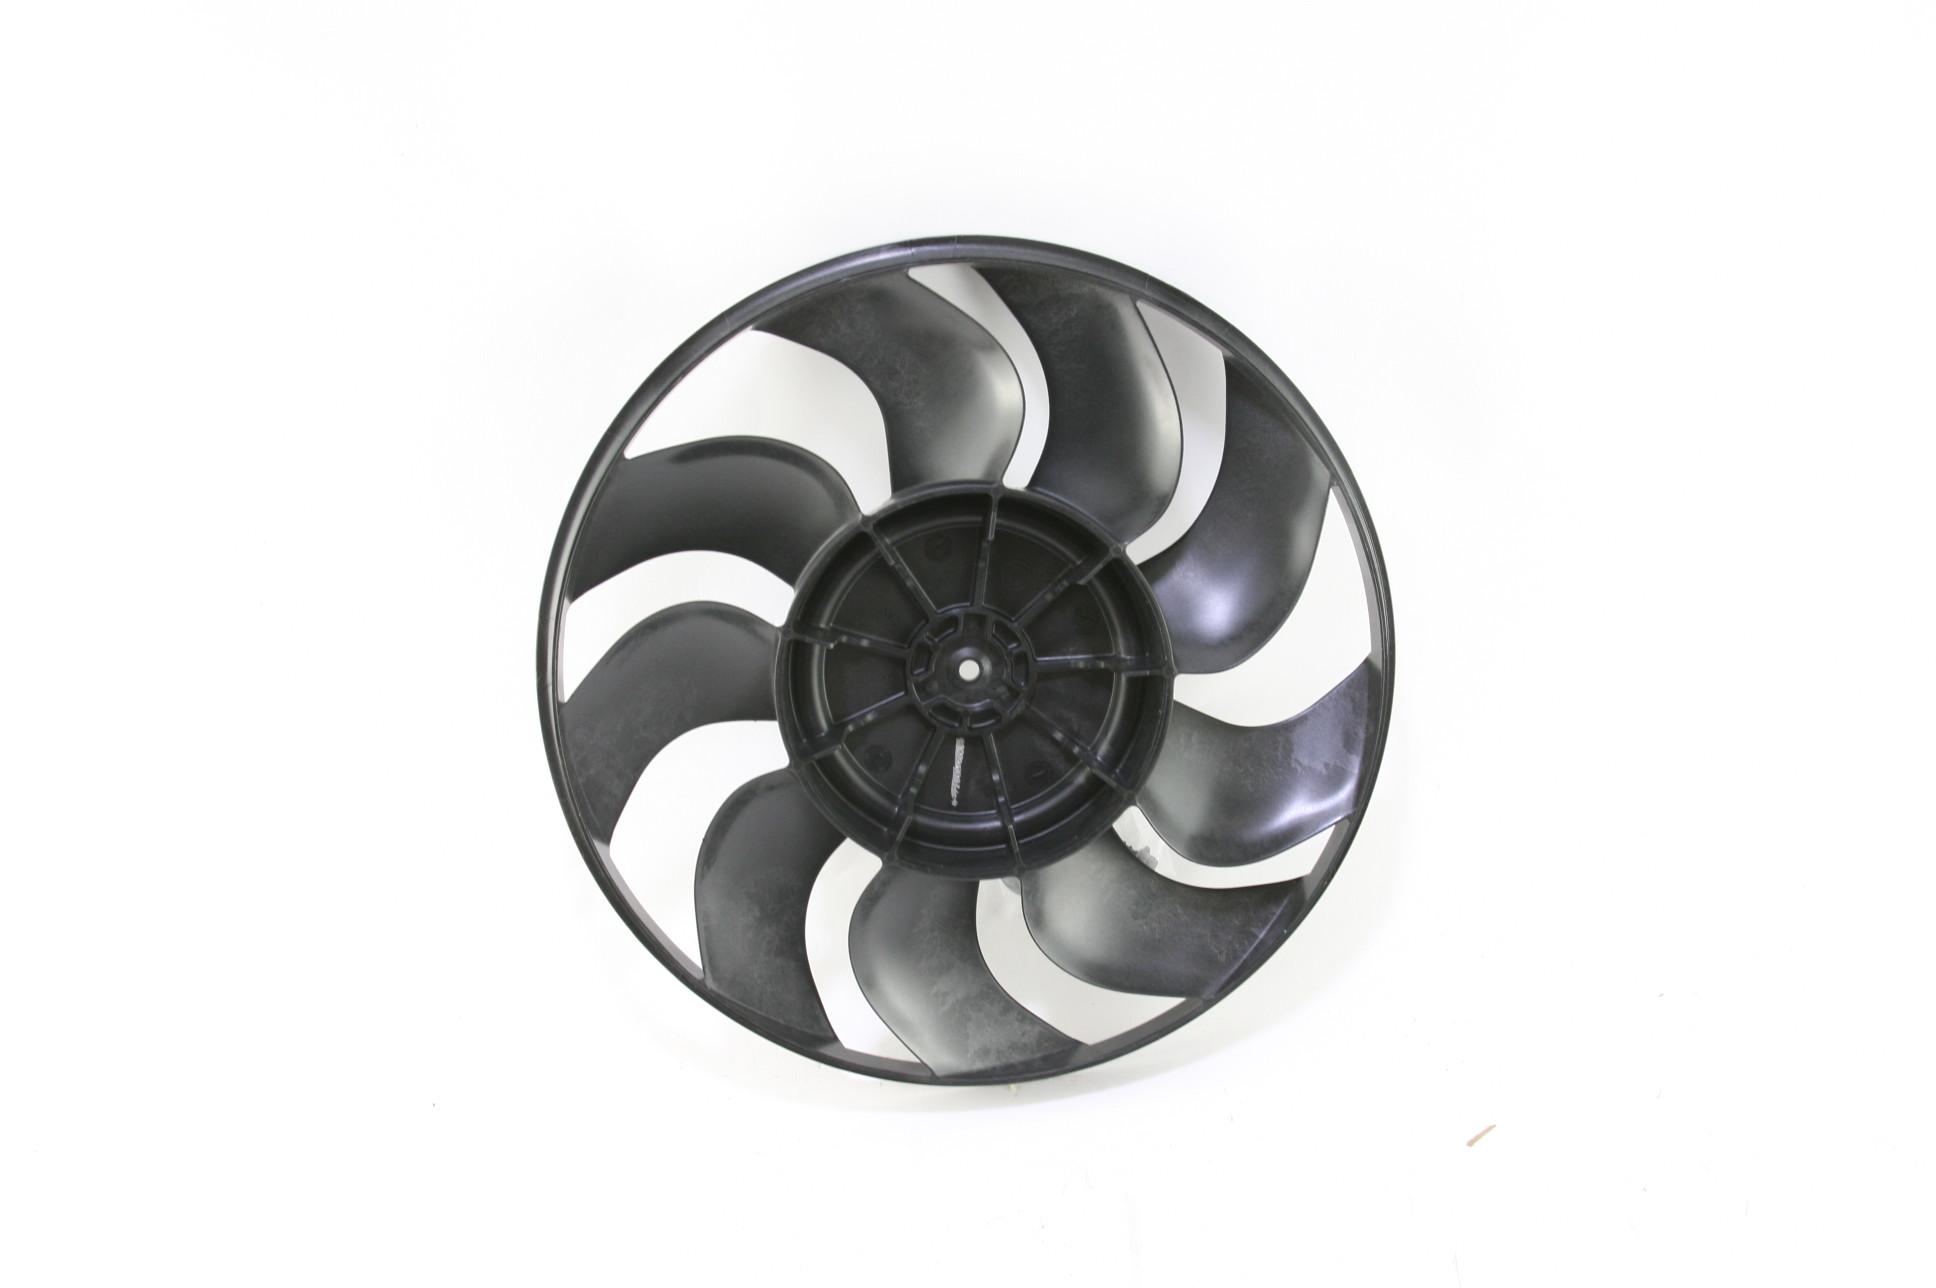 *~ New OEM ACDelco 15-81640 Engine Cooling Fan Left 13269461 Fast Free Shipping - image 5